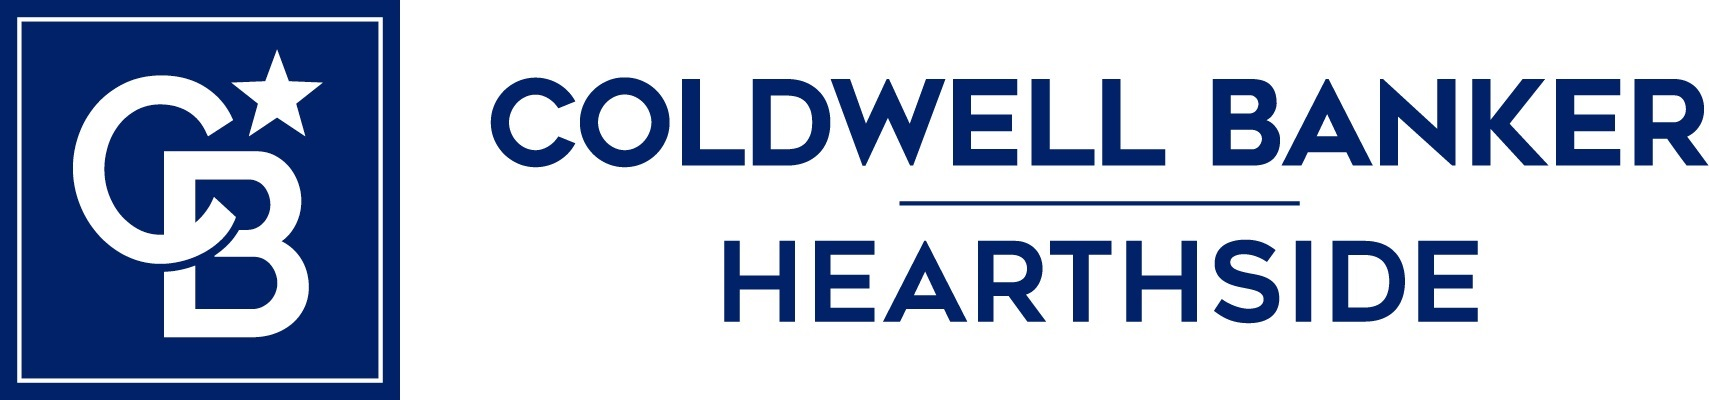 Karen Jefferys - Coldwell Banker Hearthside